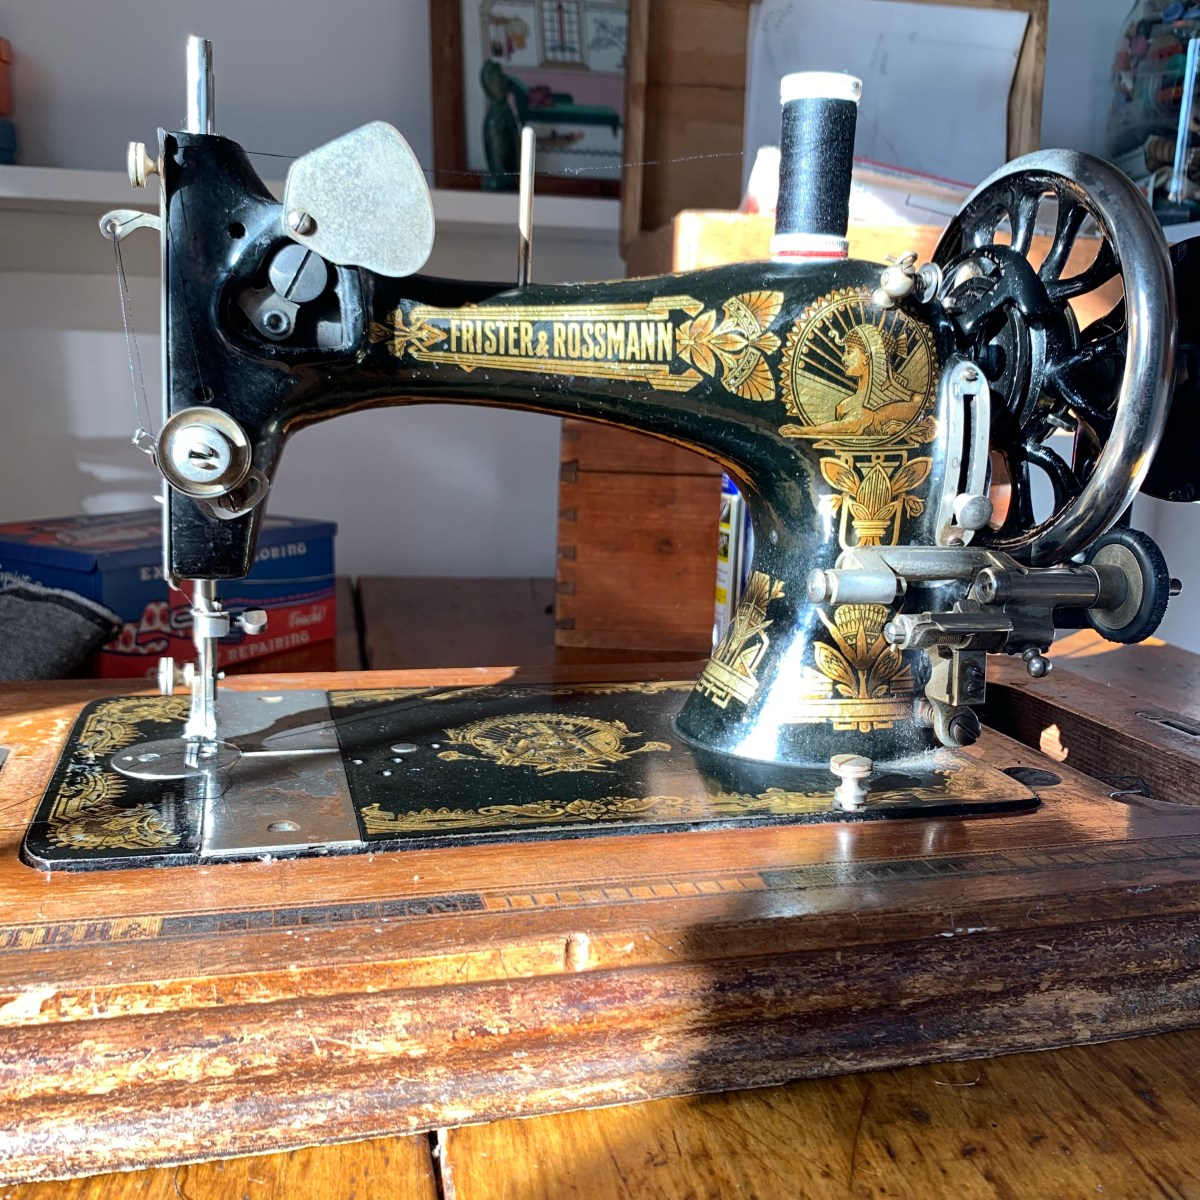 A Frister & Rossman vintage hand crank sewing machine sits on a table.